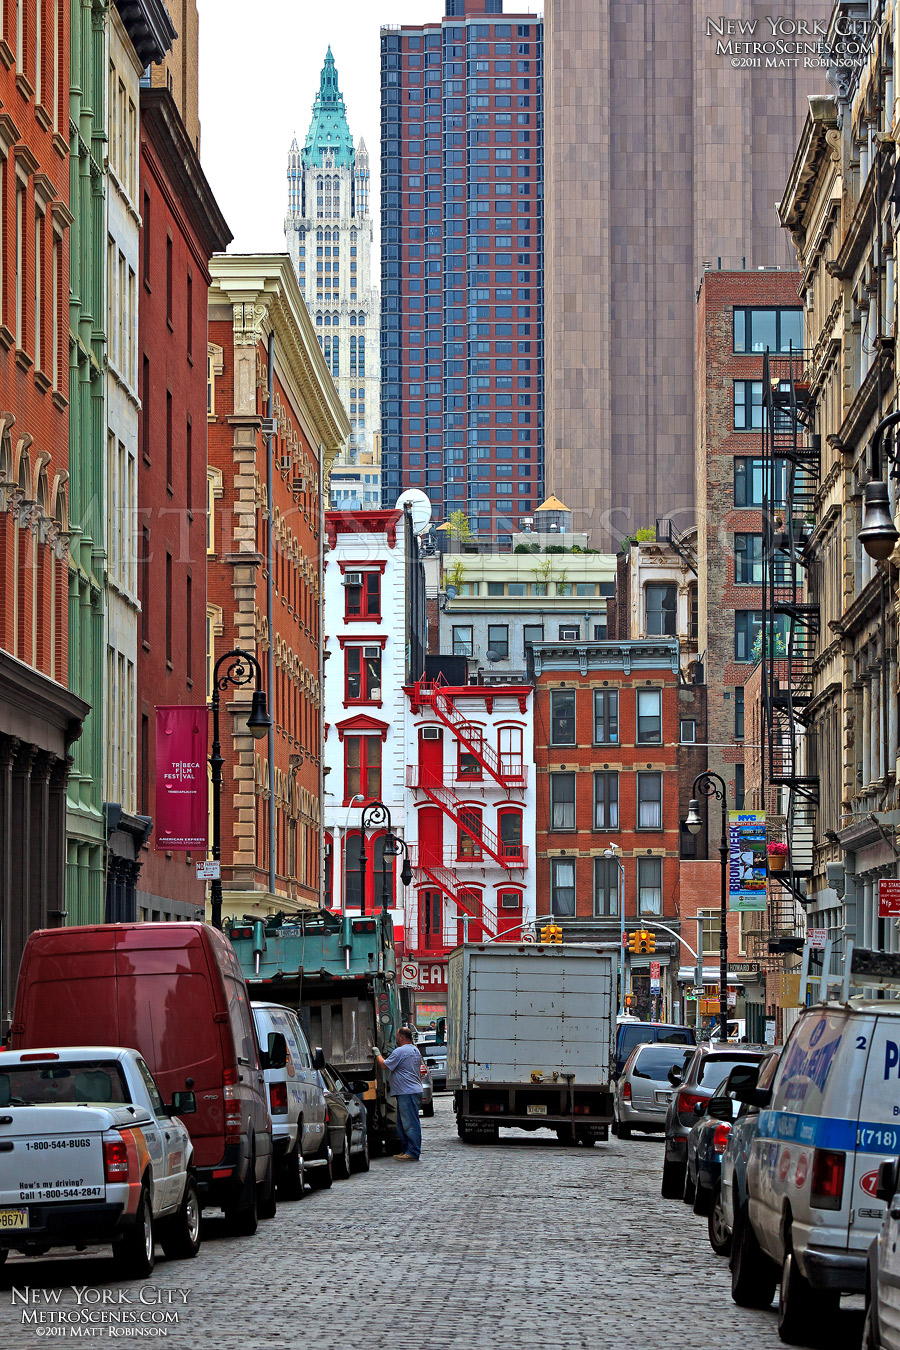 Mercer Street in New York City